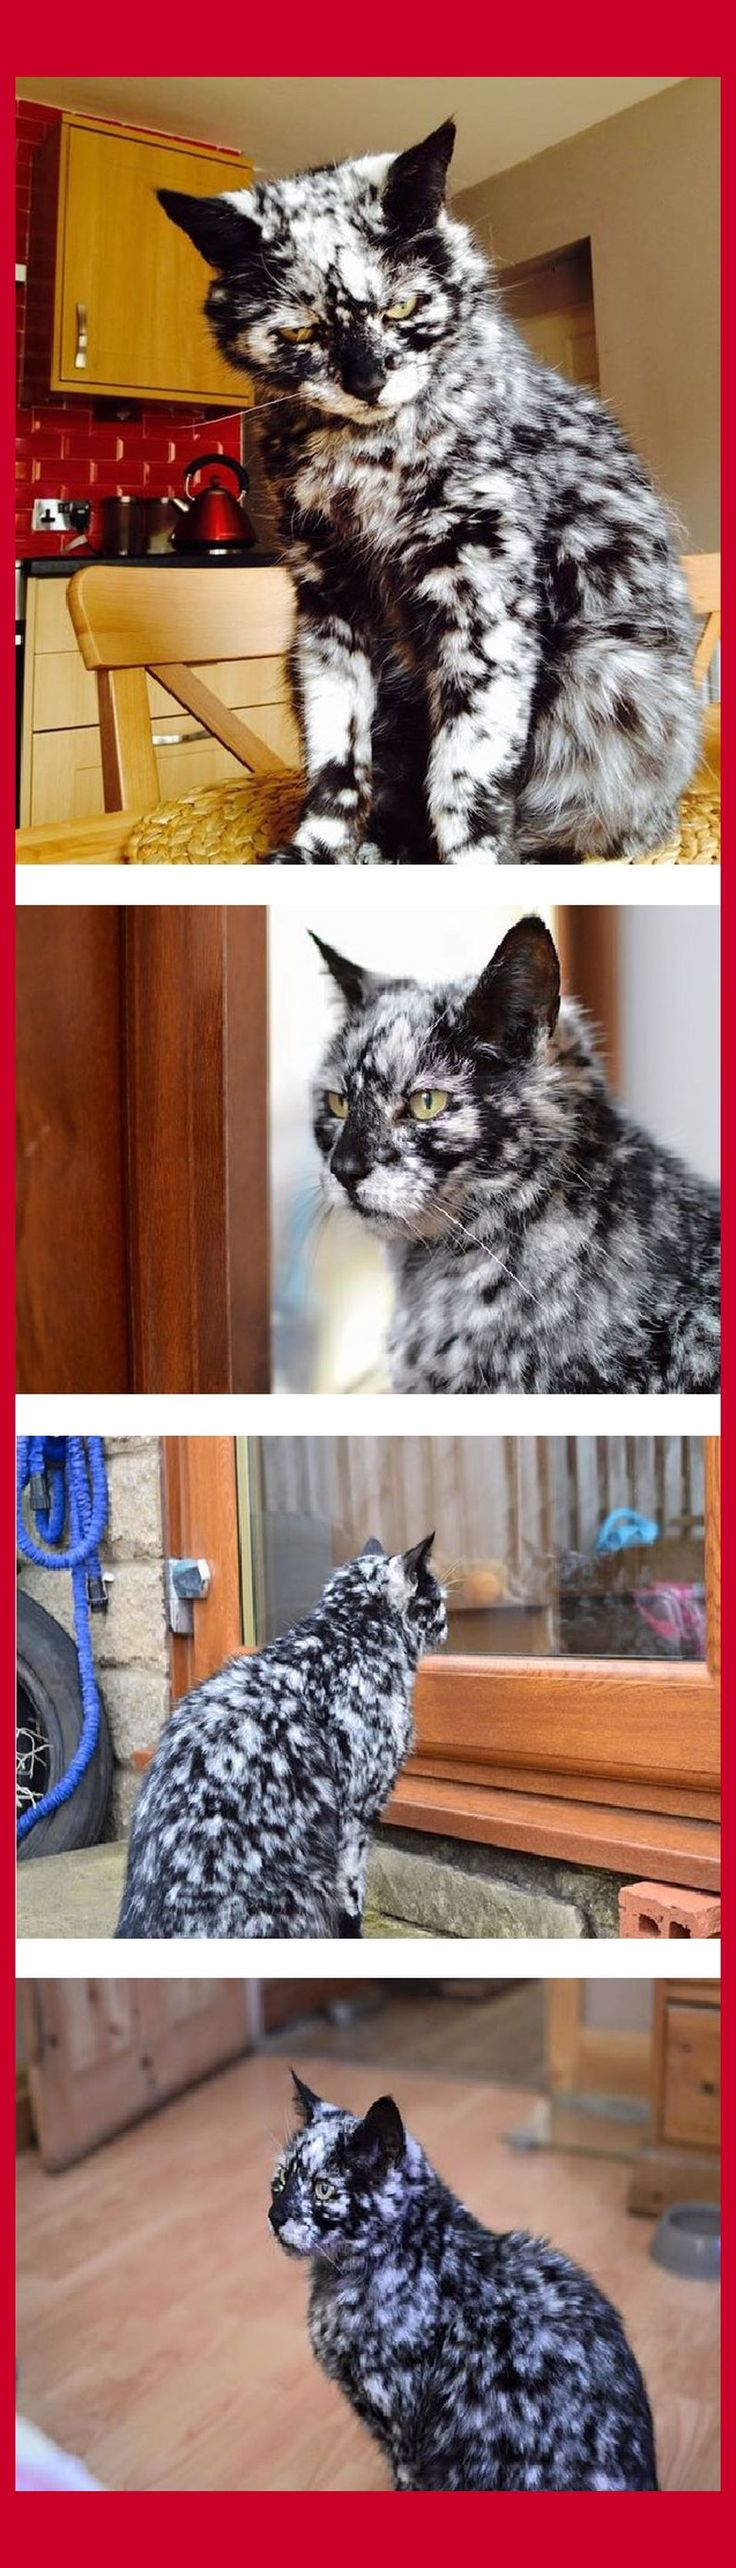 19-Year-Old Black Cat Turns Into A Nordic God Due To A Rare Skin Condition -- QUELLE: by Elizabeth at www.boredpanda.com